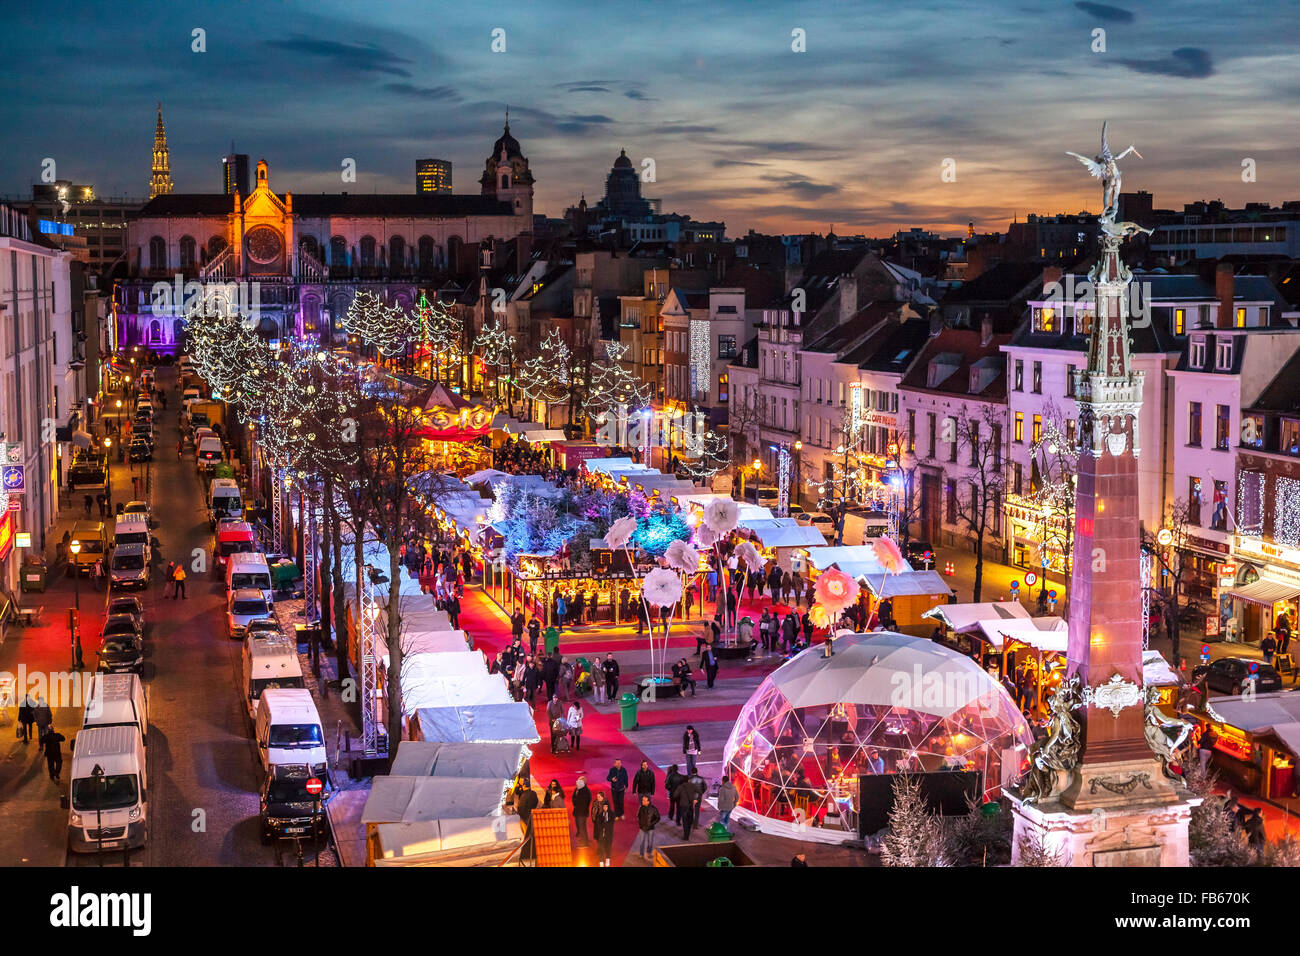 Belgium, Brussels Christmas Market or Winter Wonders, Marché aux Poissons, Fish Market next to St Catherine Church. Stock Photo